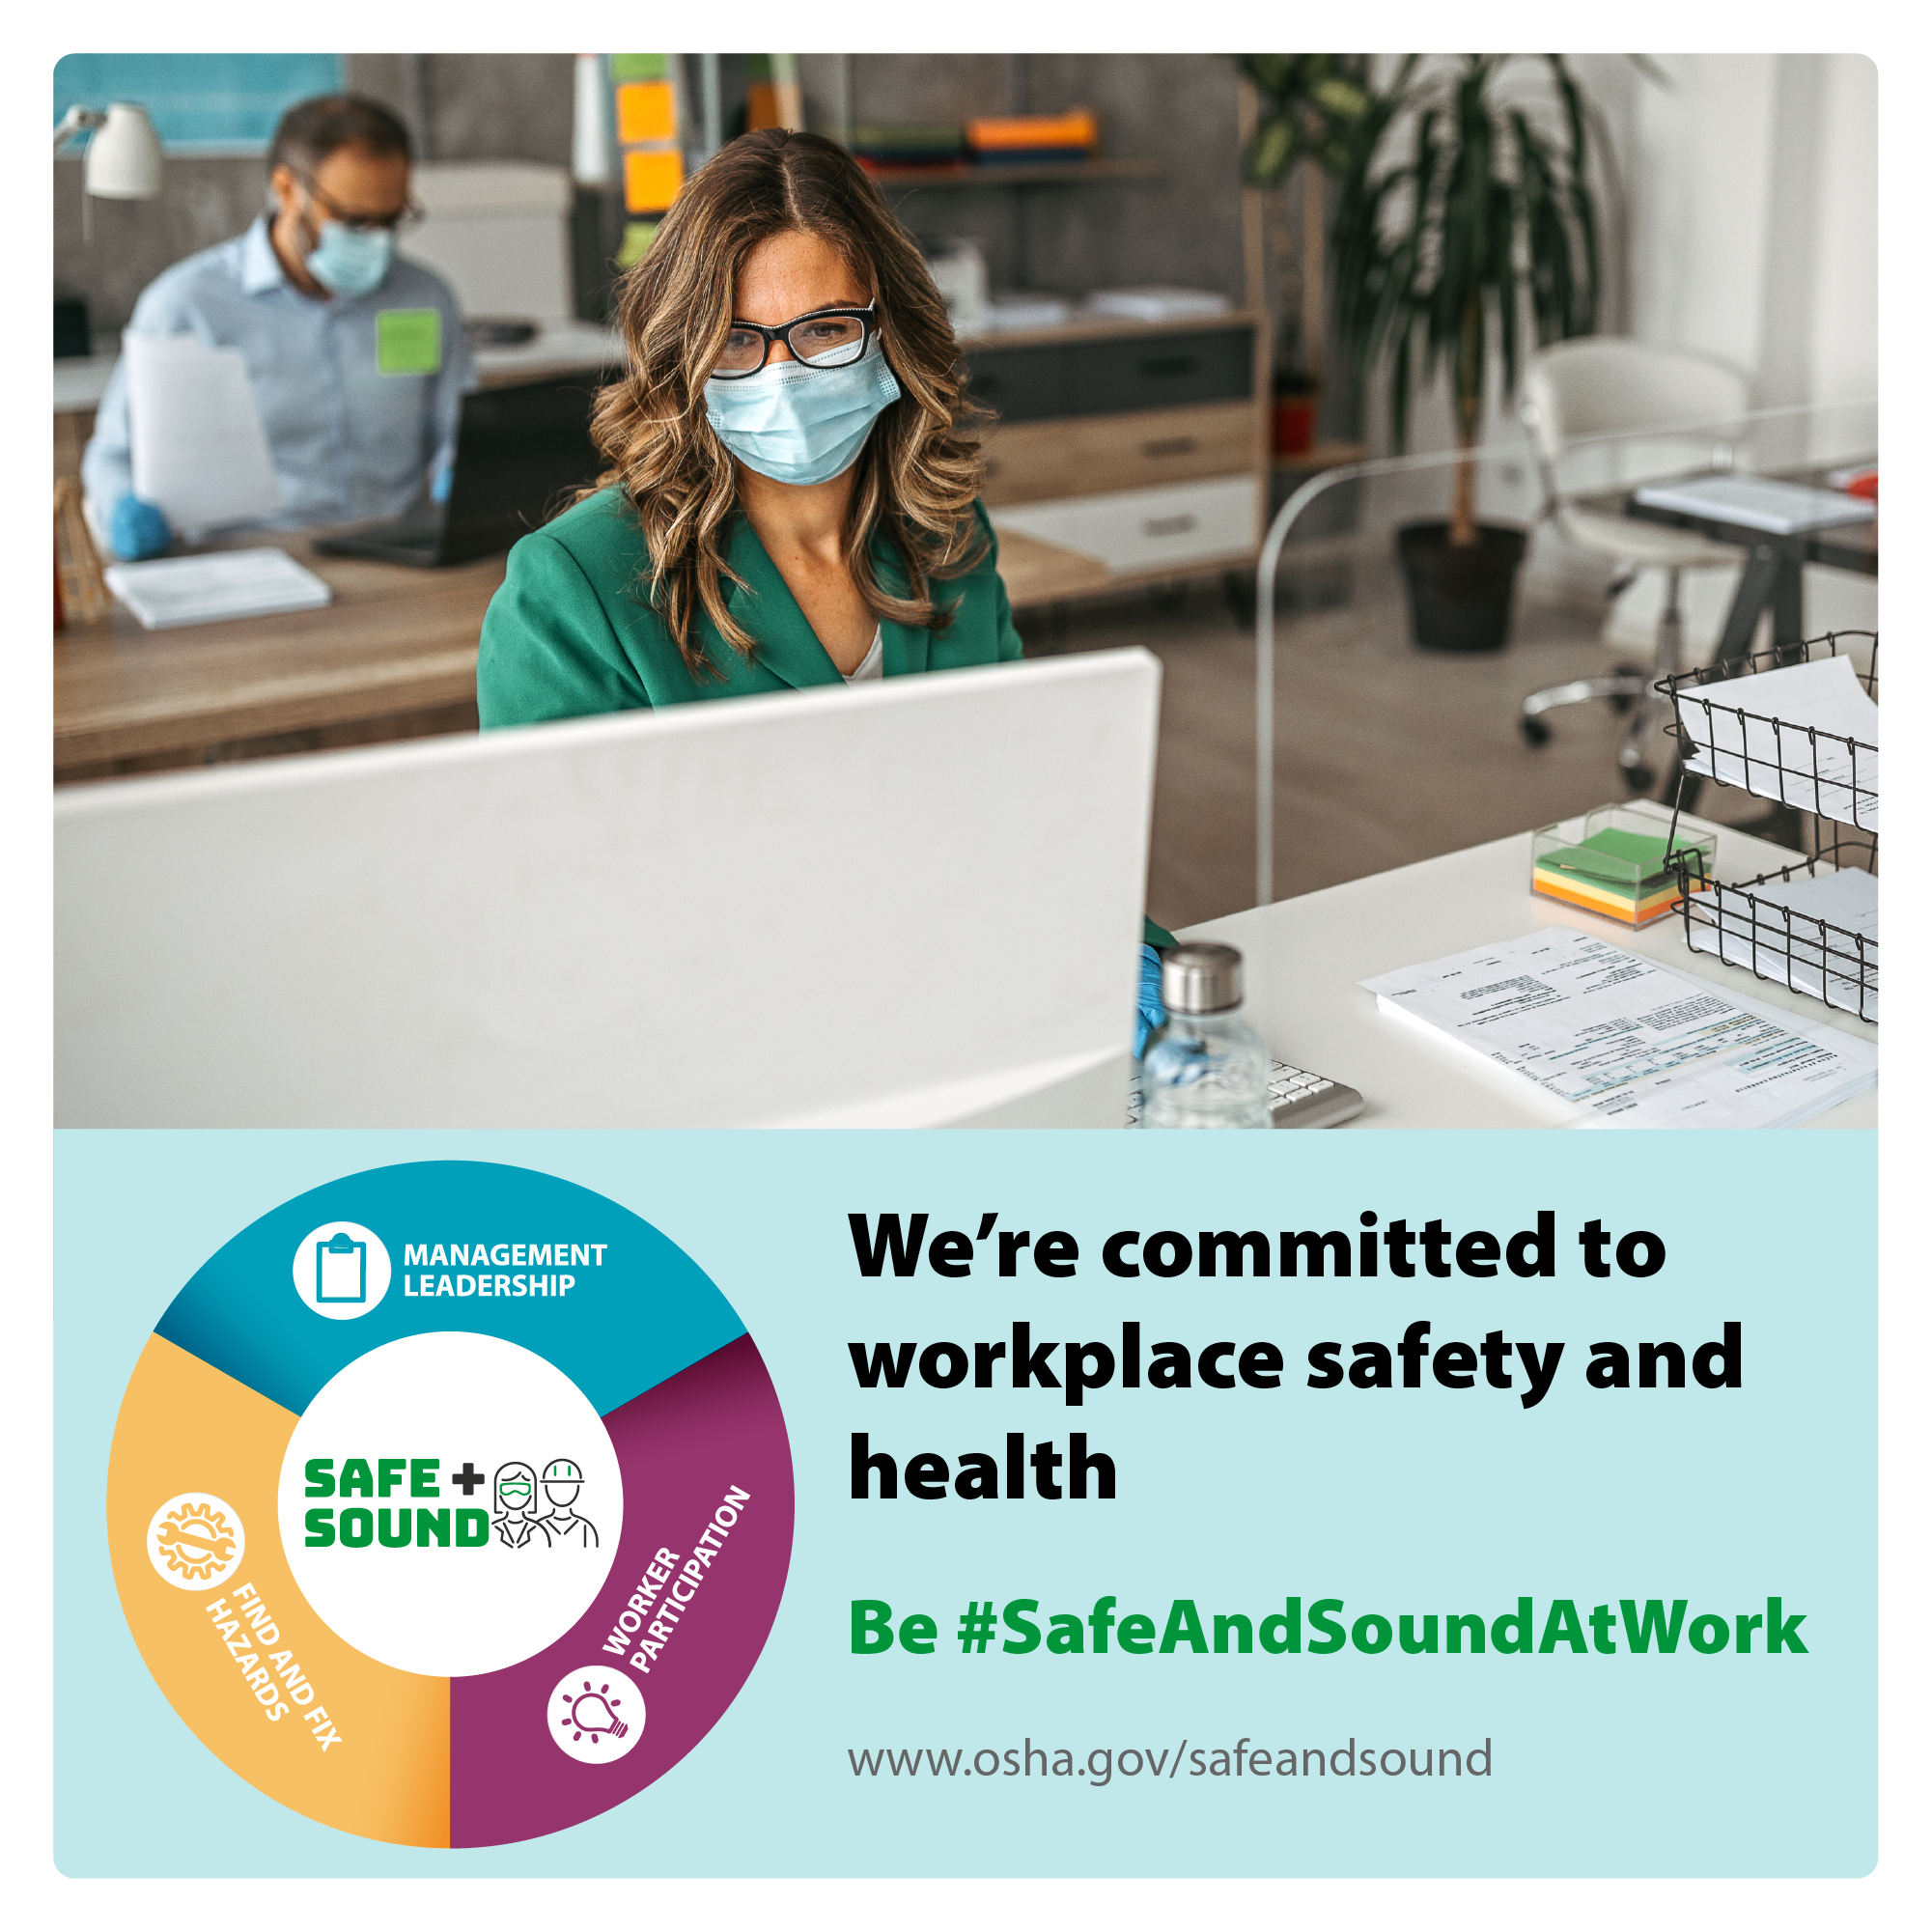 Image of office workers at their desks, wearing masks, with the text: We're committed to workplace safety and health be #SafeAndSoundAtWork - www.osha.gov/safeandsound